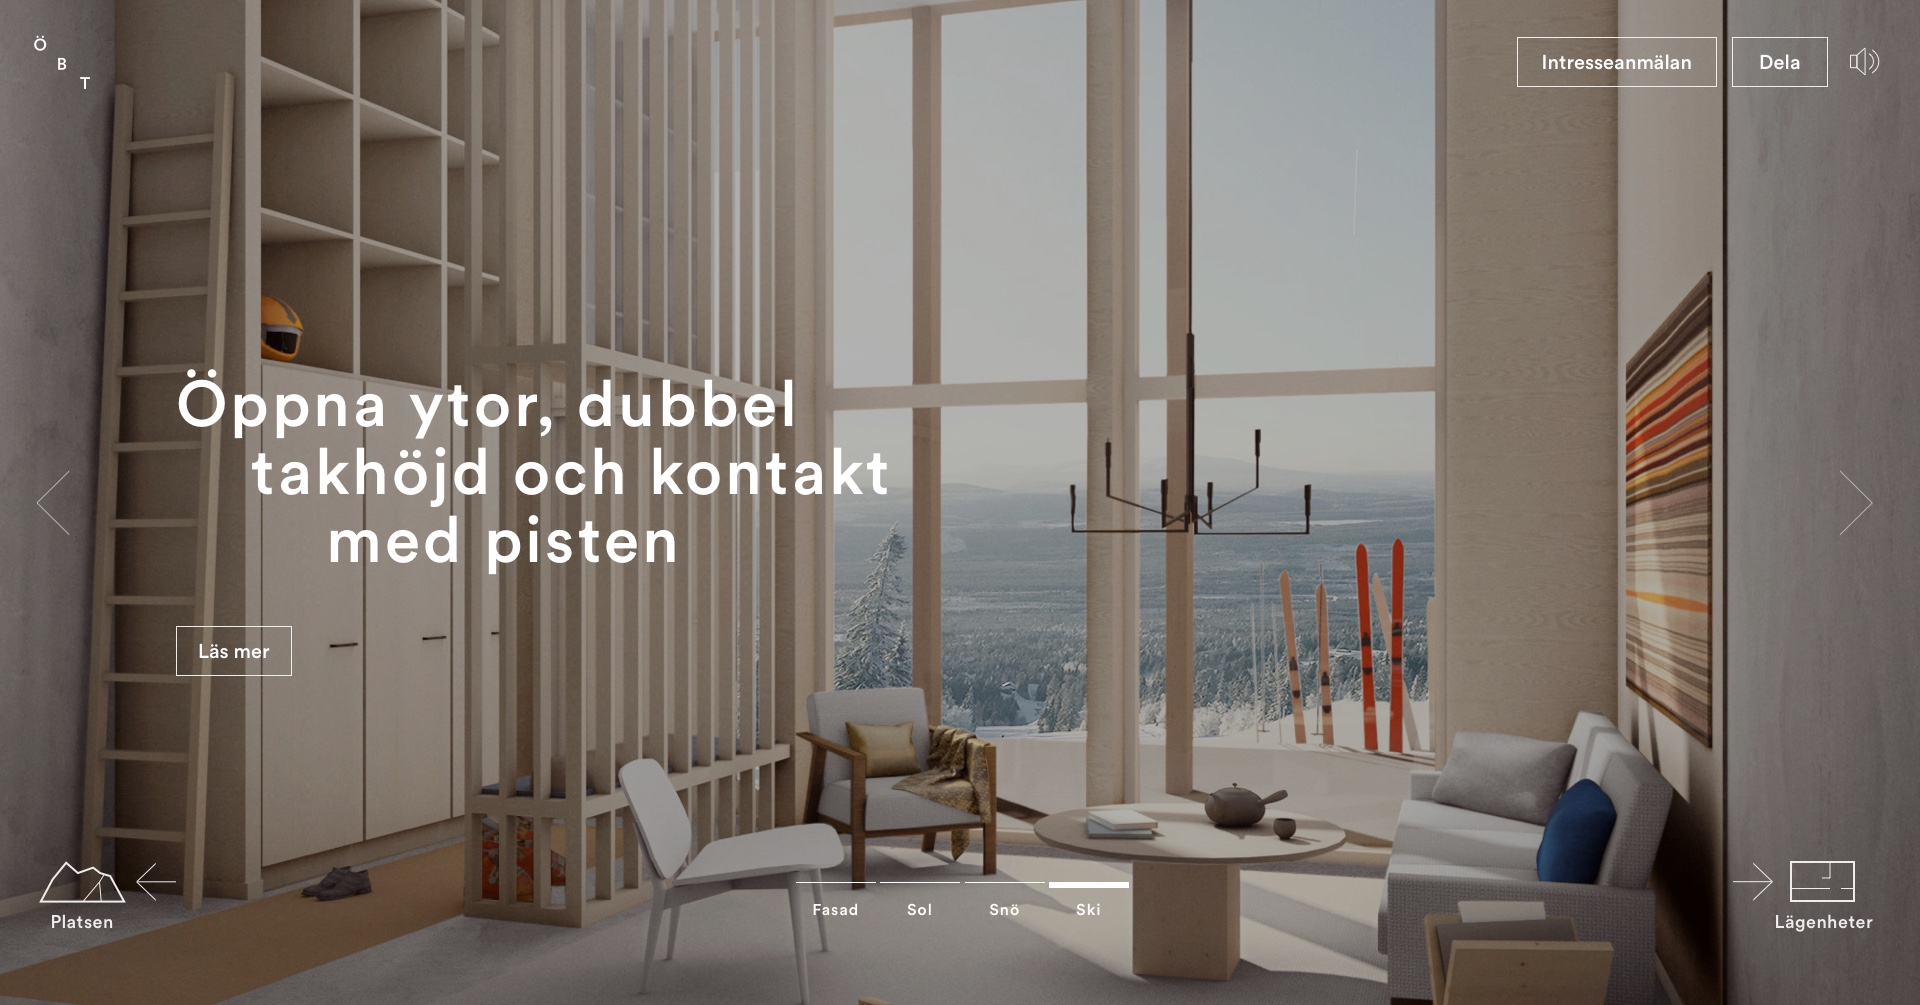 Digital design for Fahlander Architects and Övre Björnterrassen. Material from the process. UI design showing the navigation interface on 3D rendered image of interior.